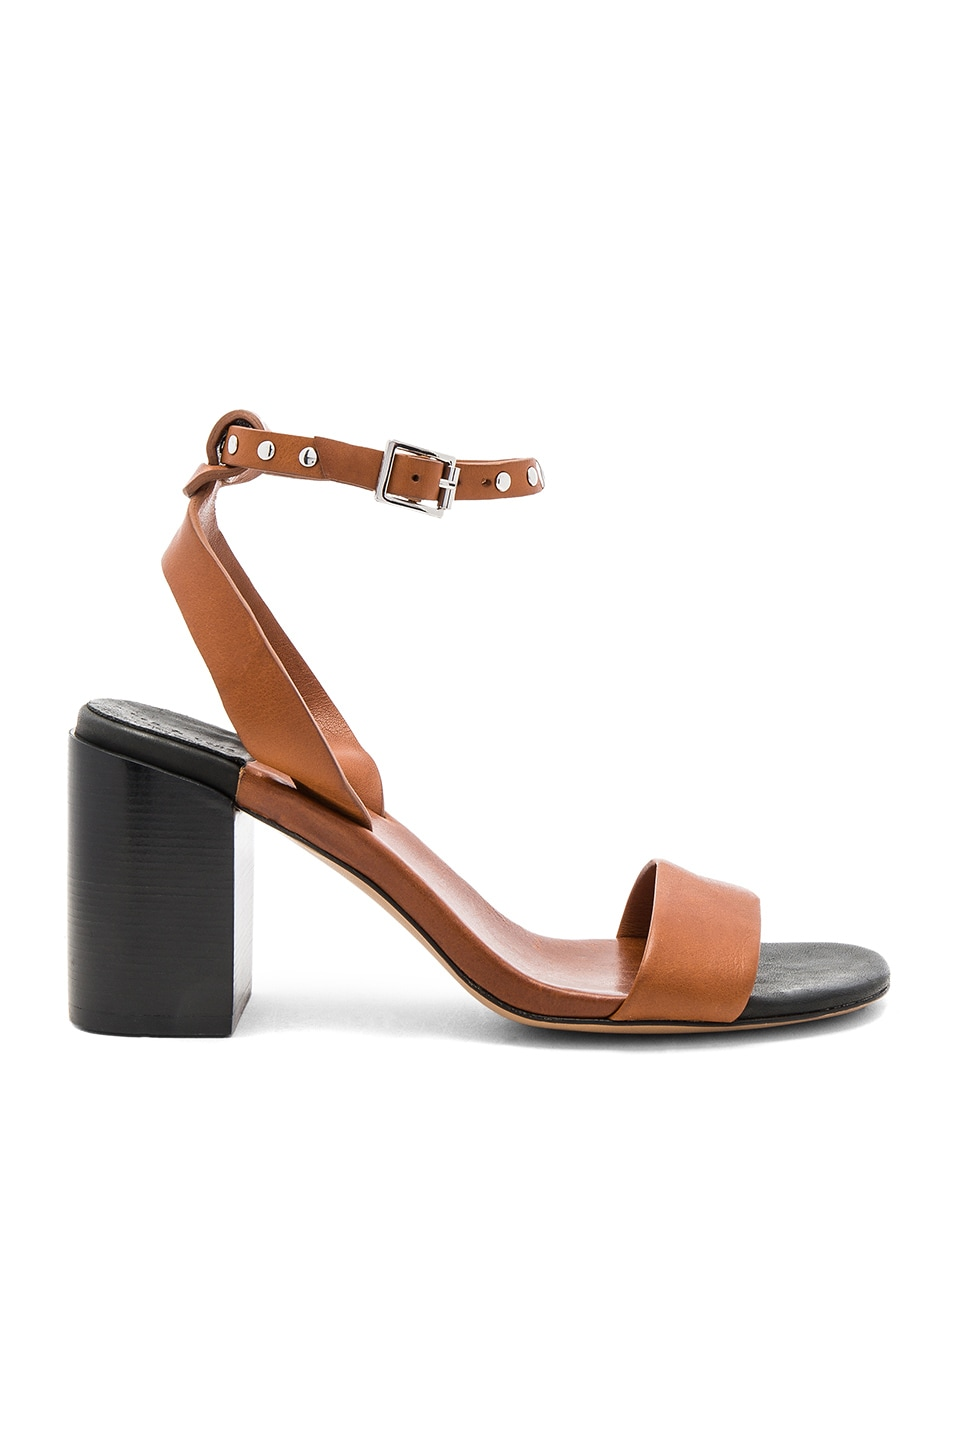 Rag & Bone Gia Sandal in Tan